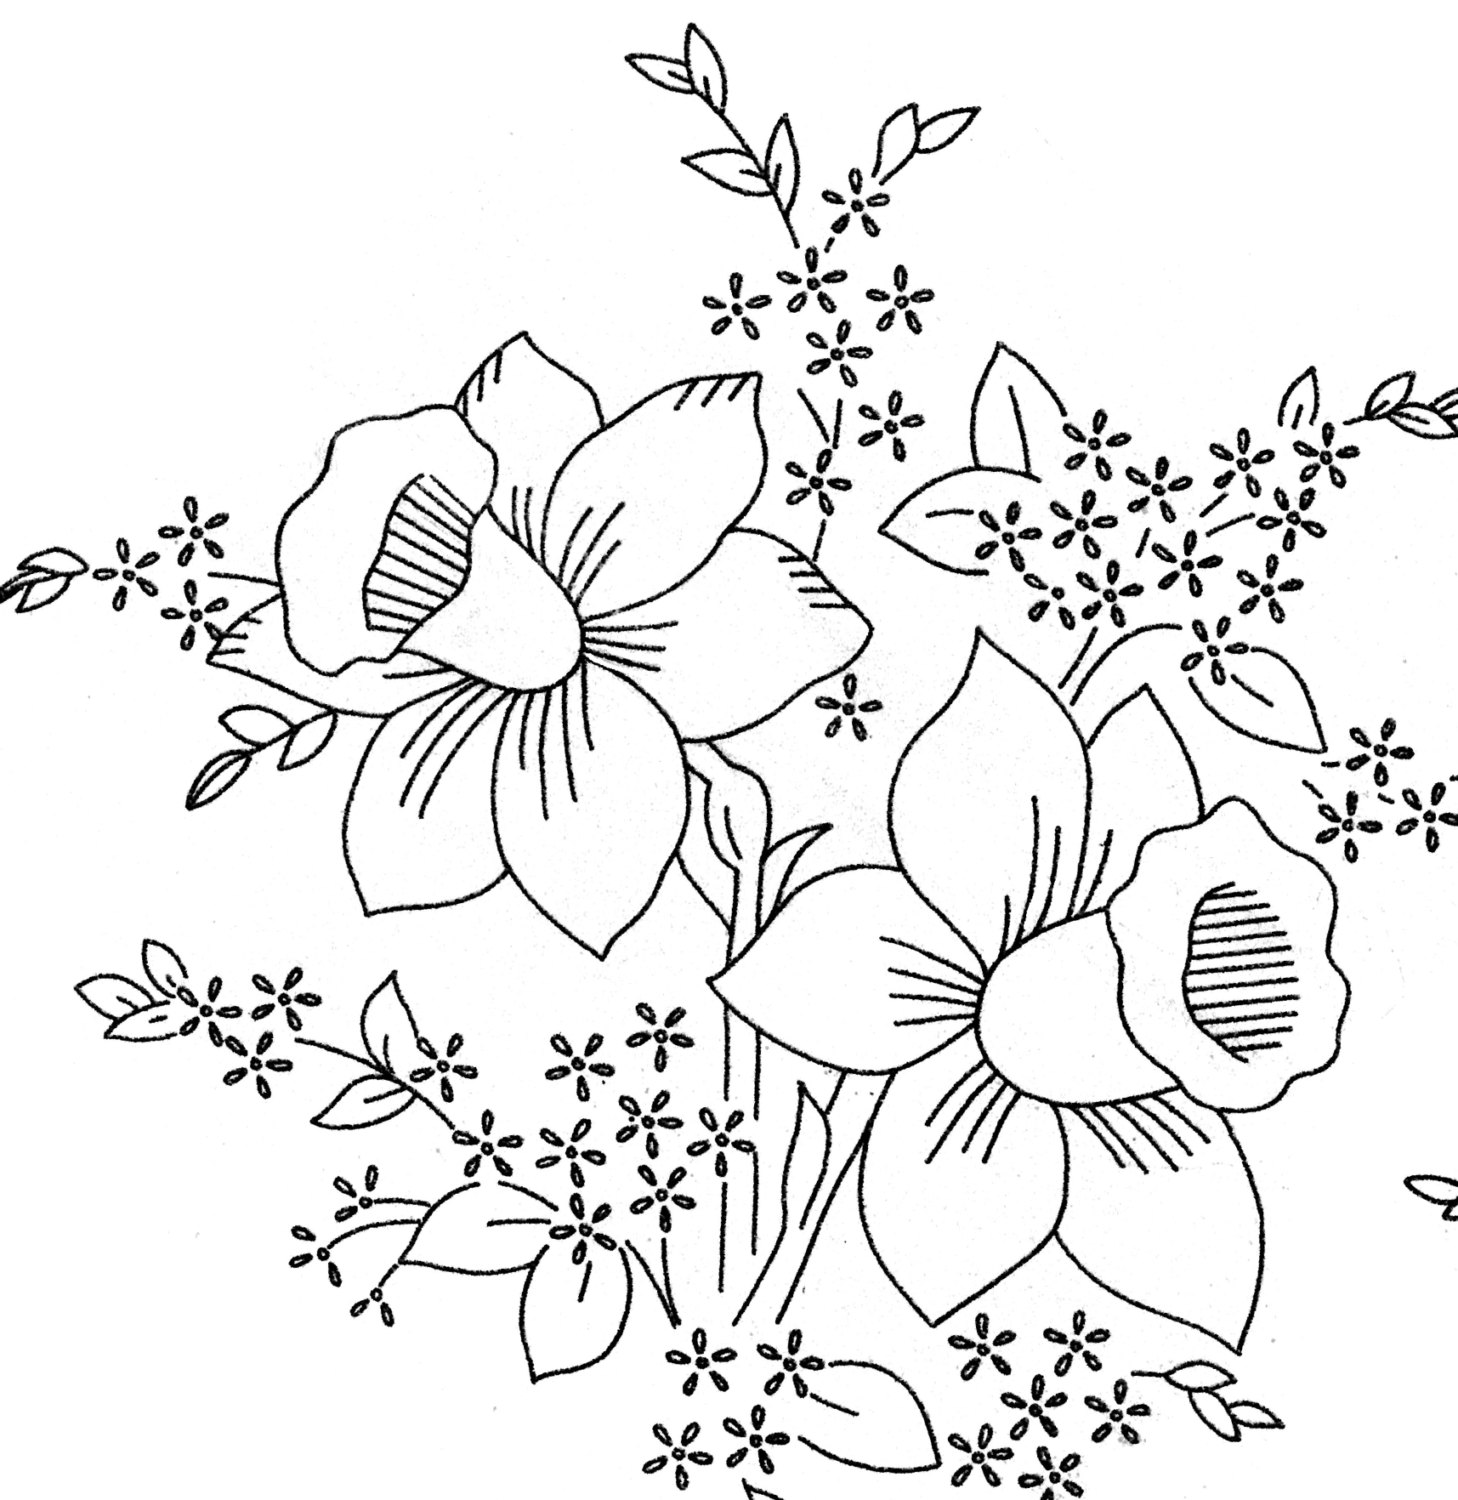 The Best Free Pansy Drawing Images Download From 50 Free